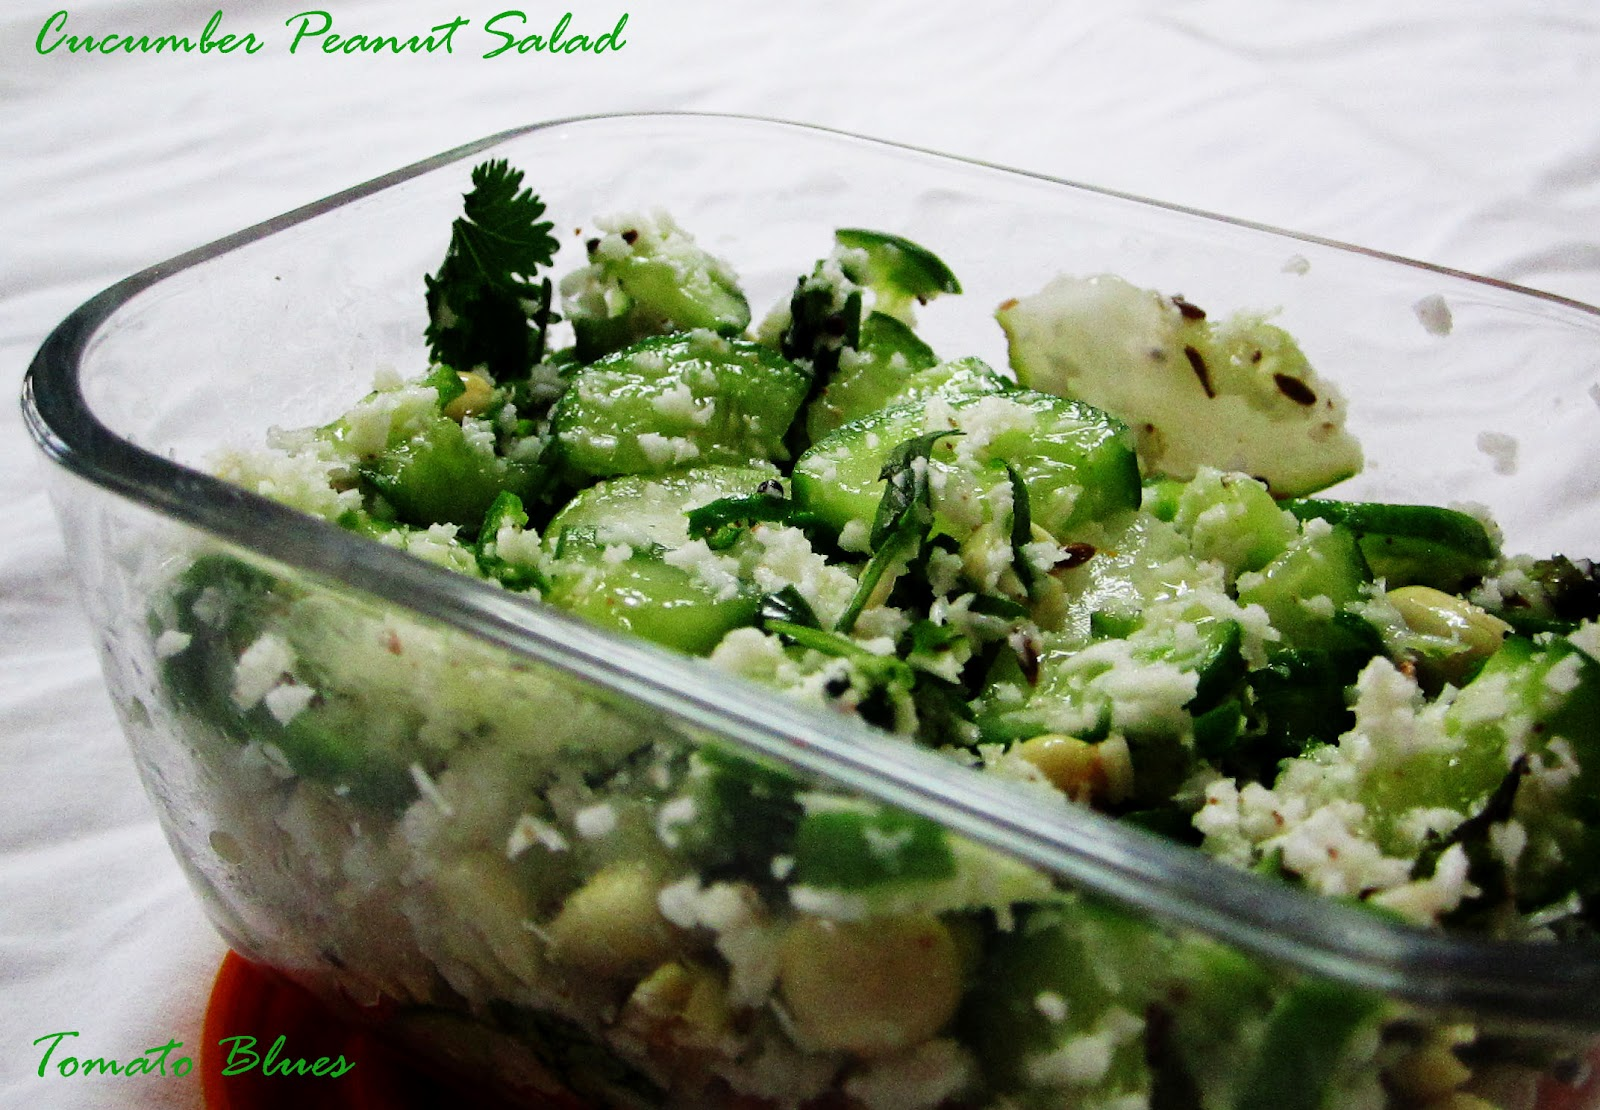 Cucumber Peanut Salad For Gourmet Seven - Tomato Blues